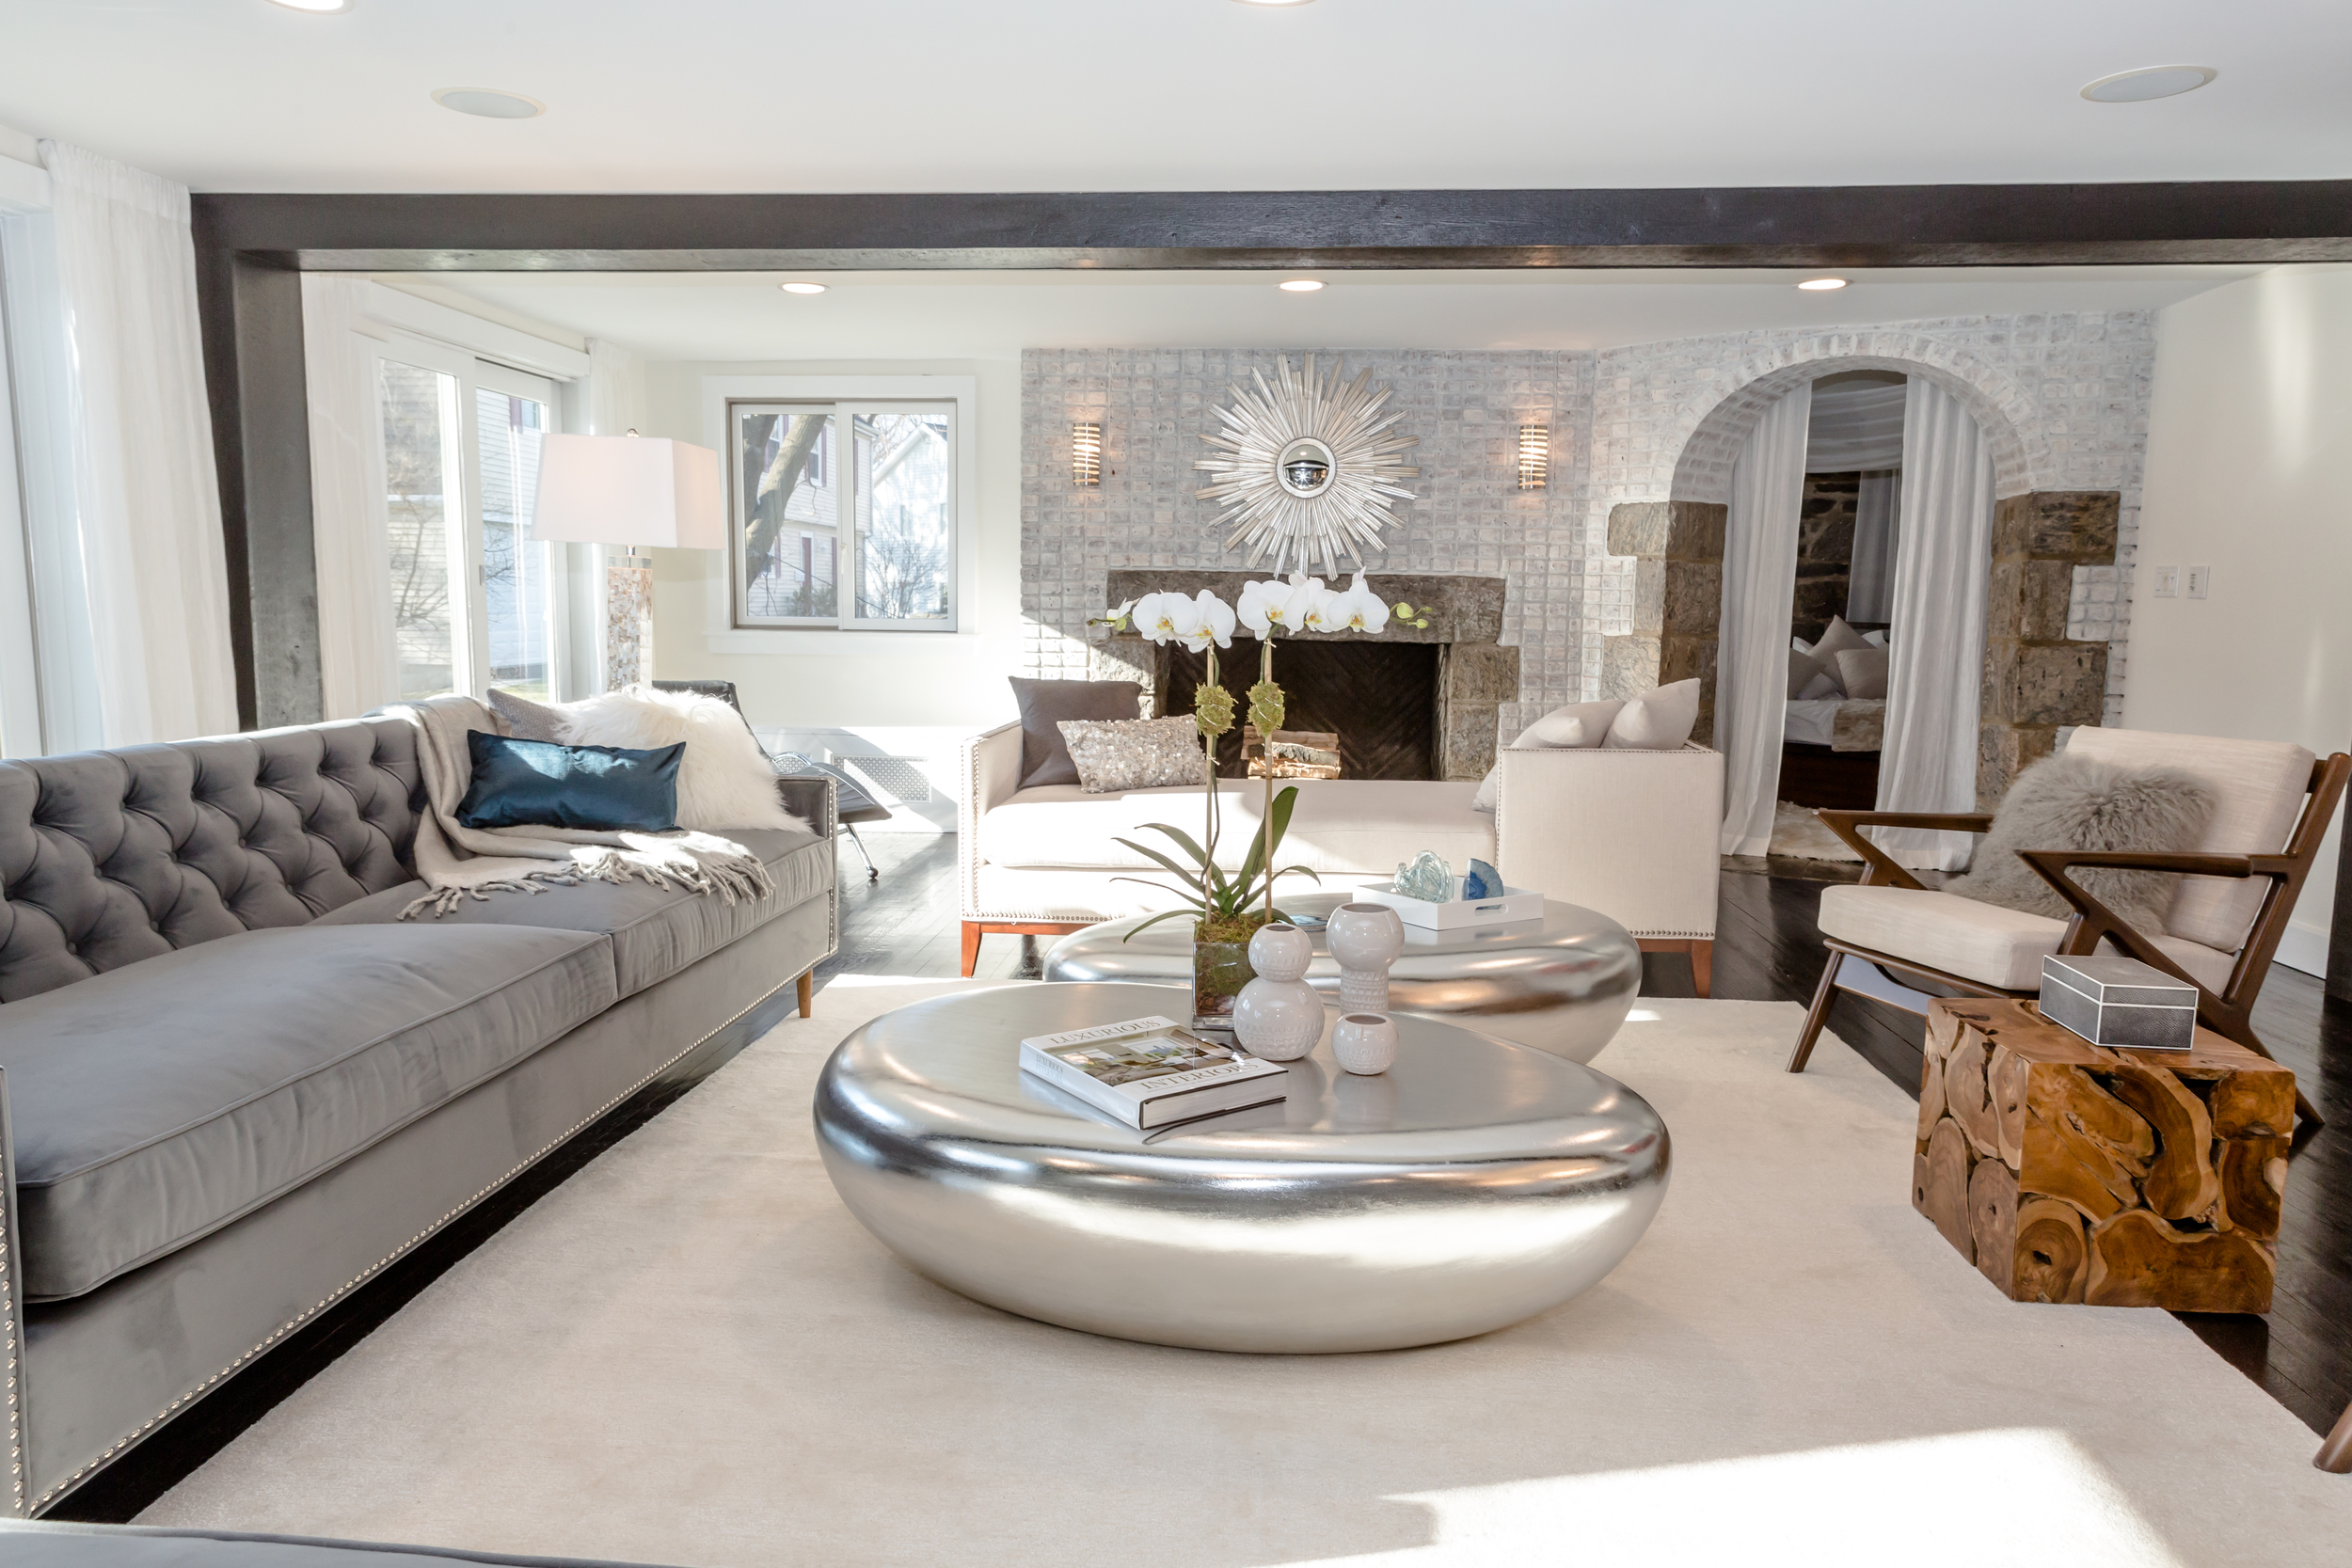 Luxury silver and grey interior deisgn